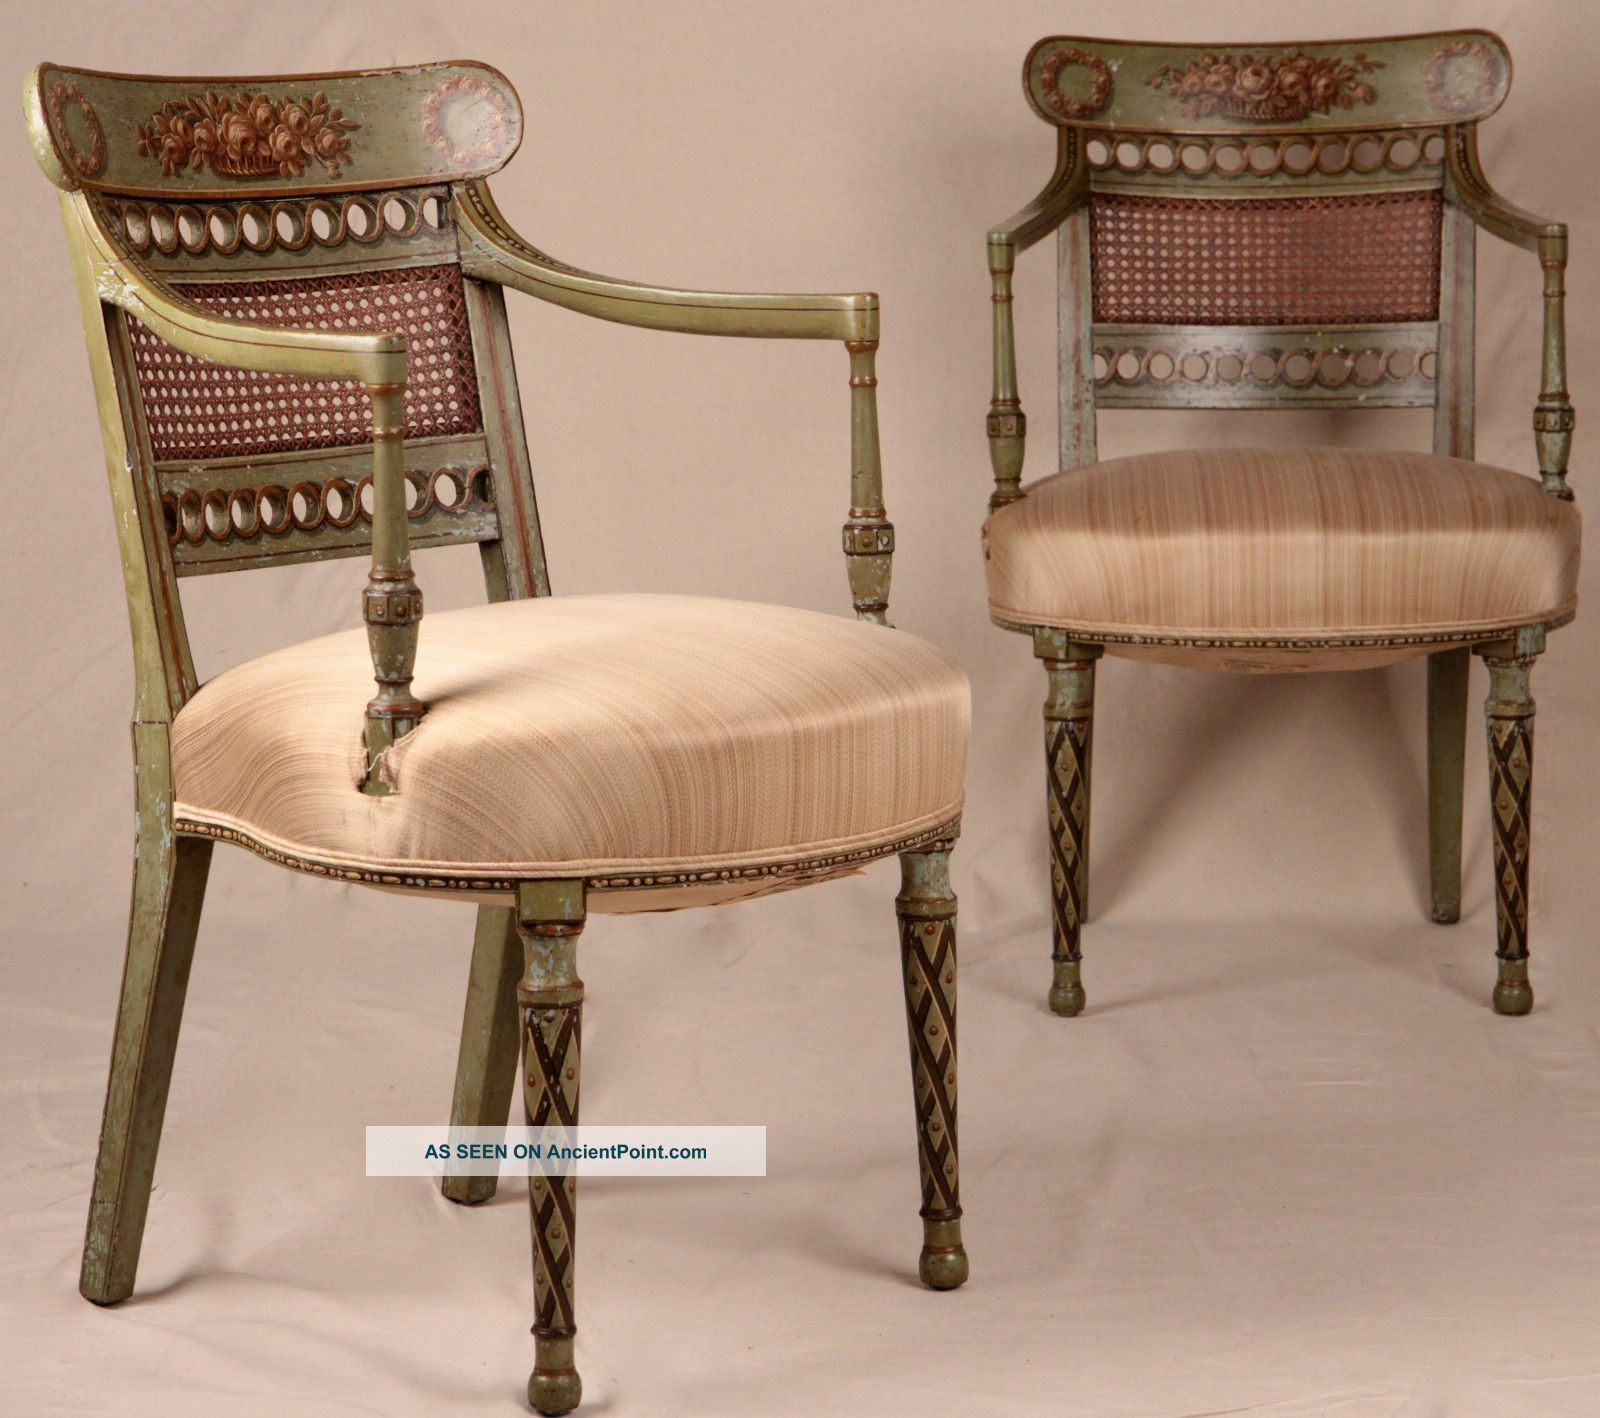 Pair Of Adams Style Painted Regency Neoclassical Antique 19th Century Arm  Chairs 1800 1899 Photo